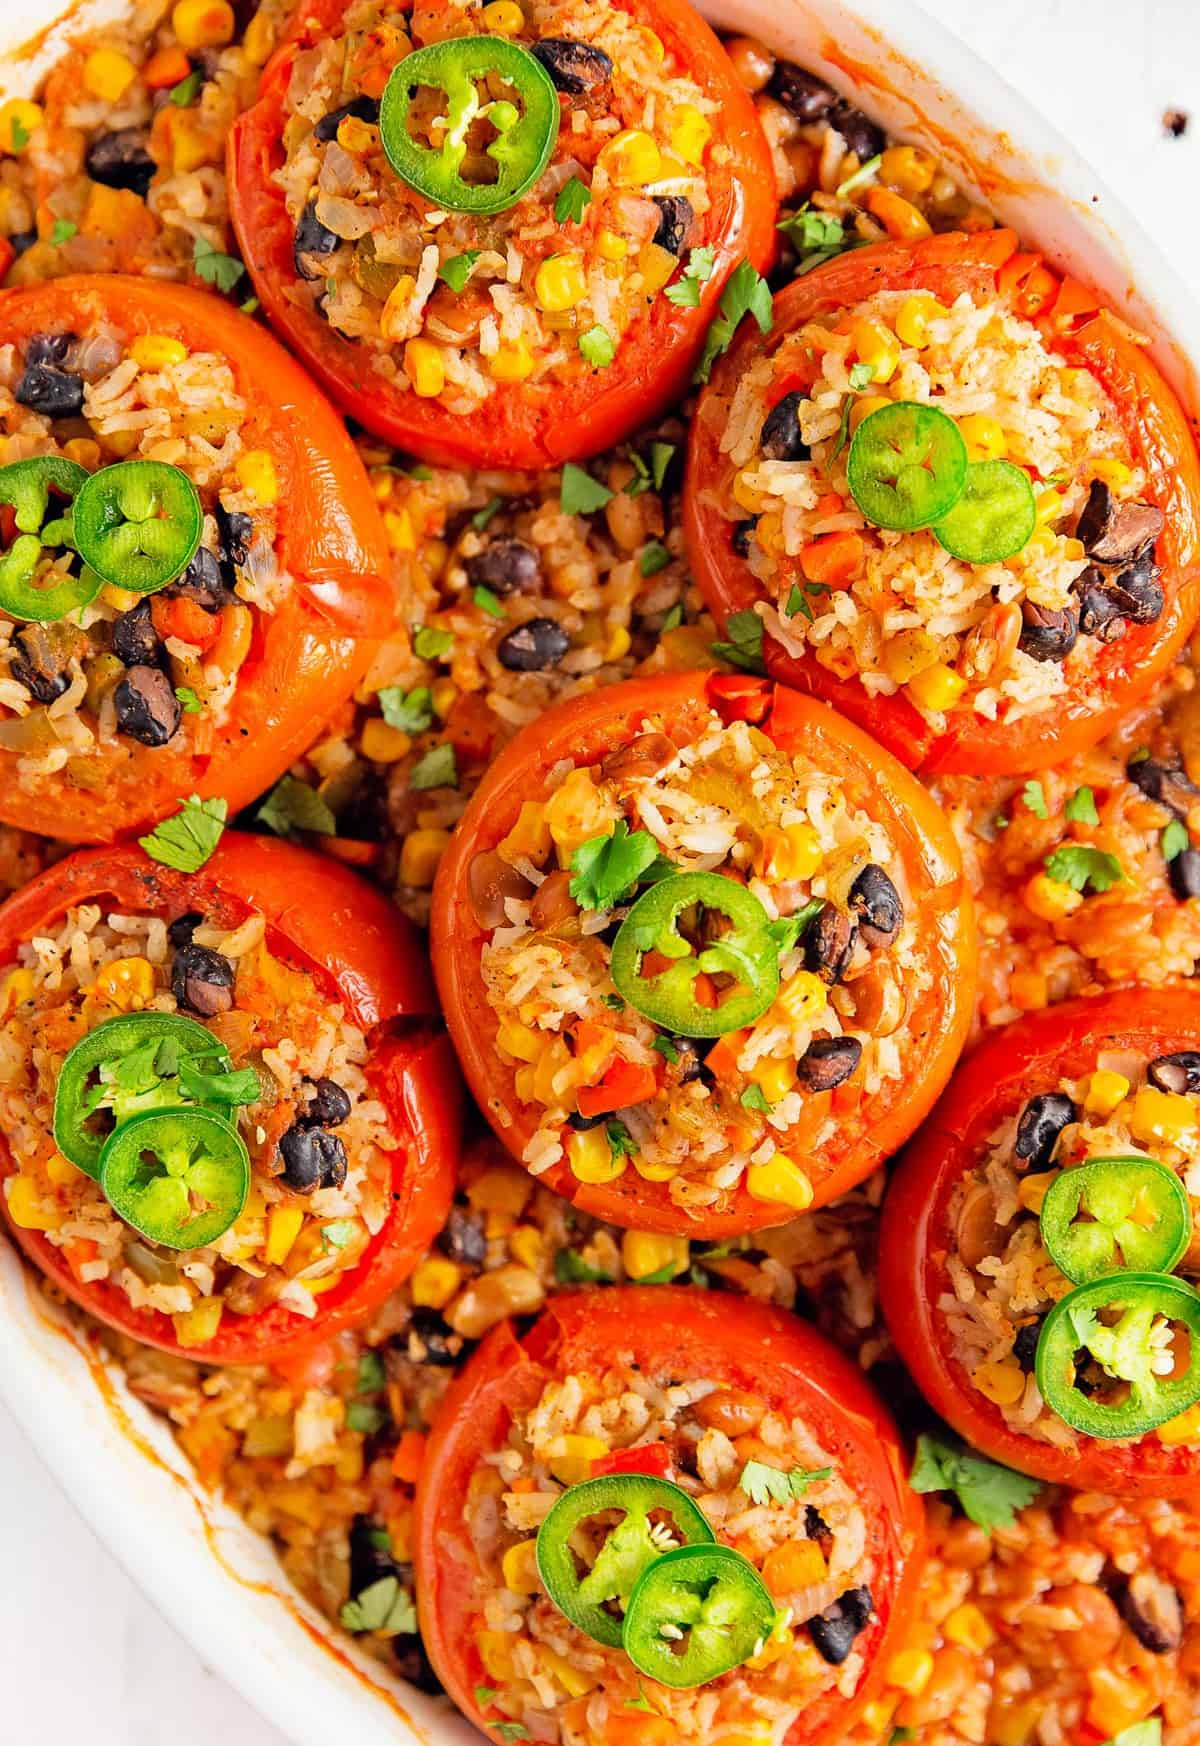 Southwestern Stuffed Tomatoes, plant based, vegan, vegetarian, whole food plant based, gluten free, recipe, wfpb, healthy, healthy vegan, oil free, no refined sugar, no oil, refined sugar free, dairy free, dinner party, entertaining, dinner